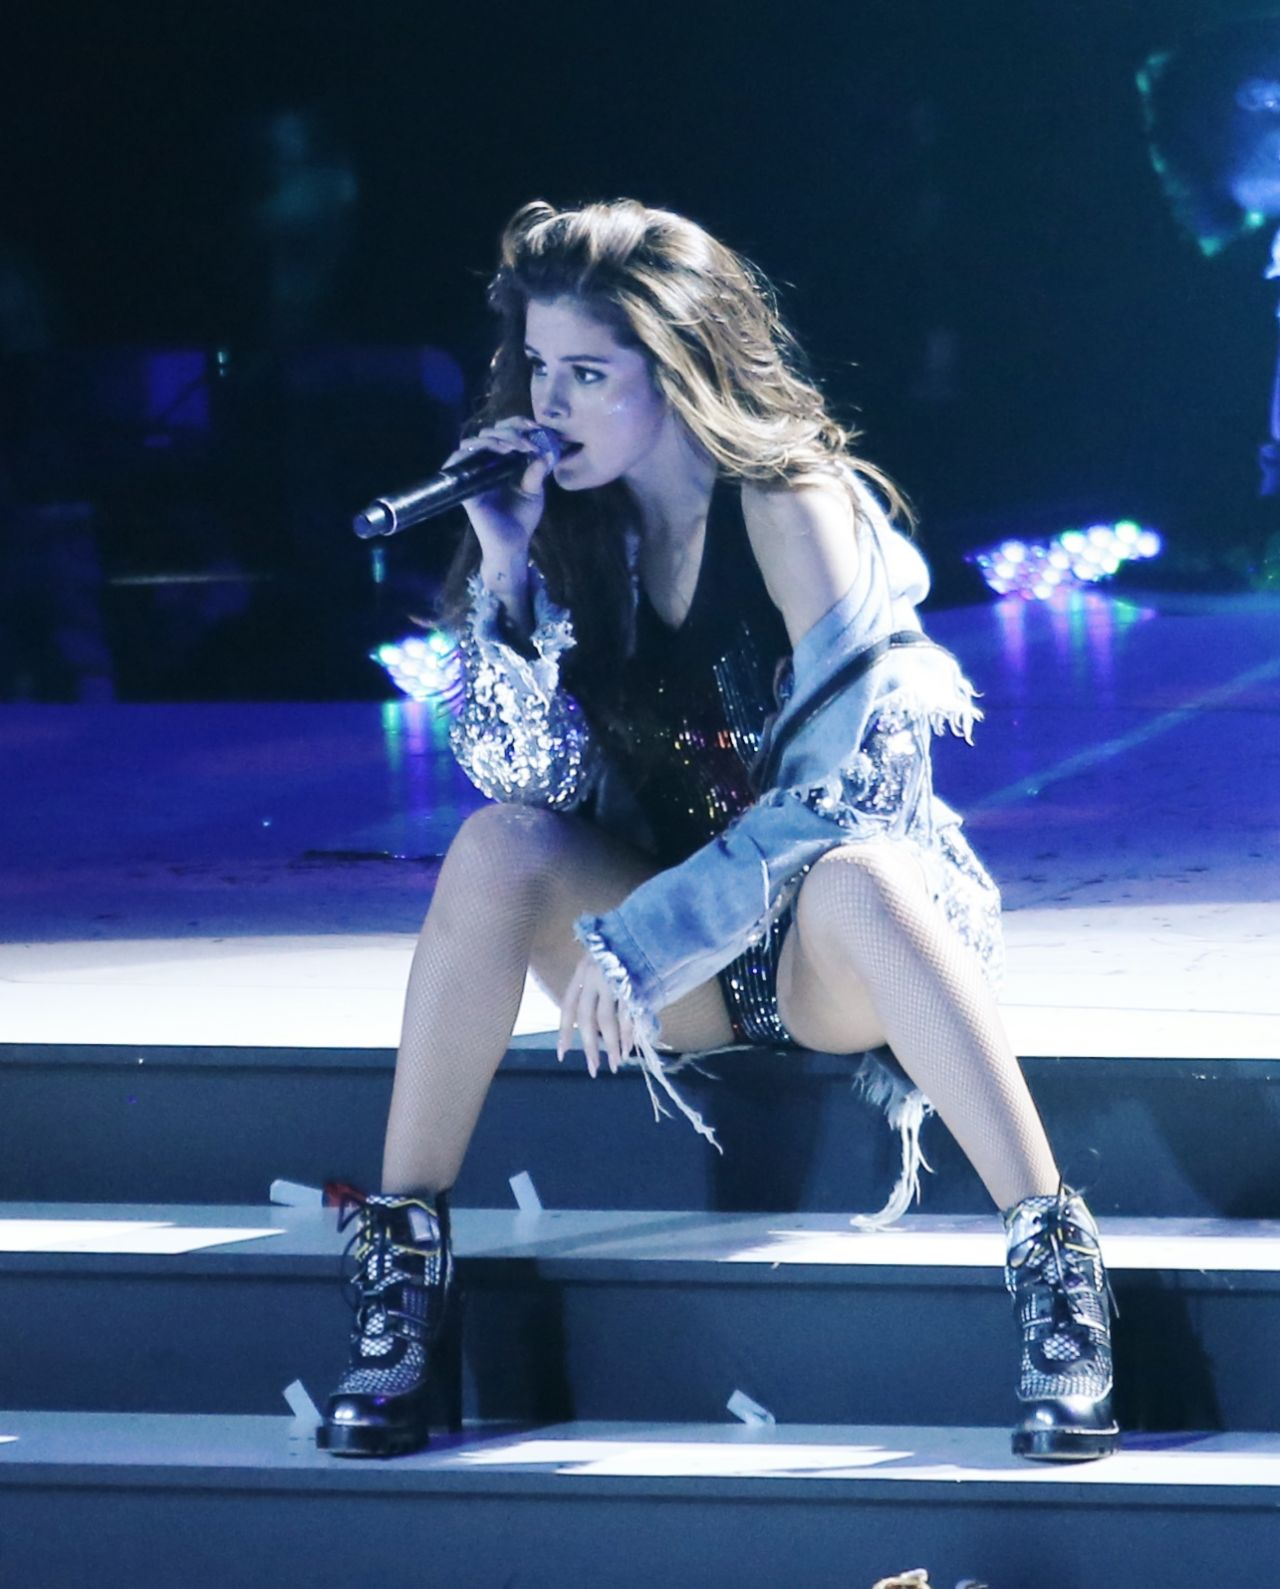 Selena Gomez House Tour: Performing On Her Revival Tour At Rogers